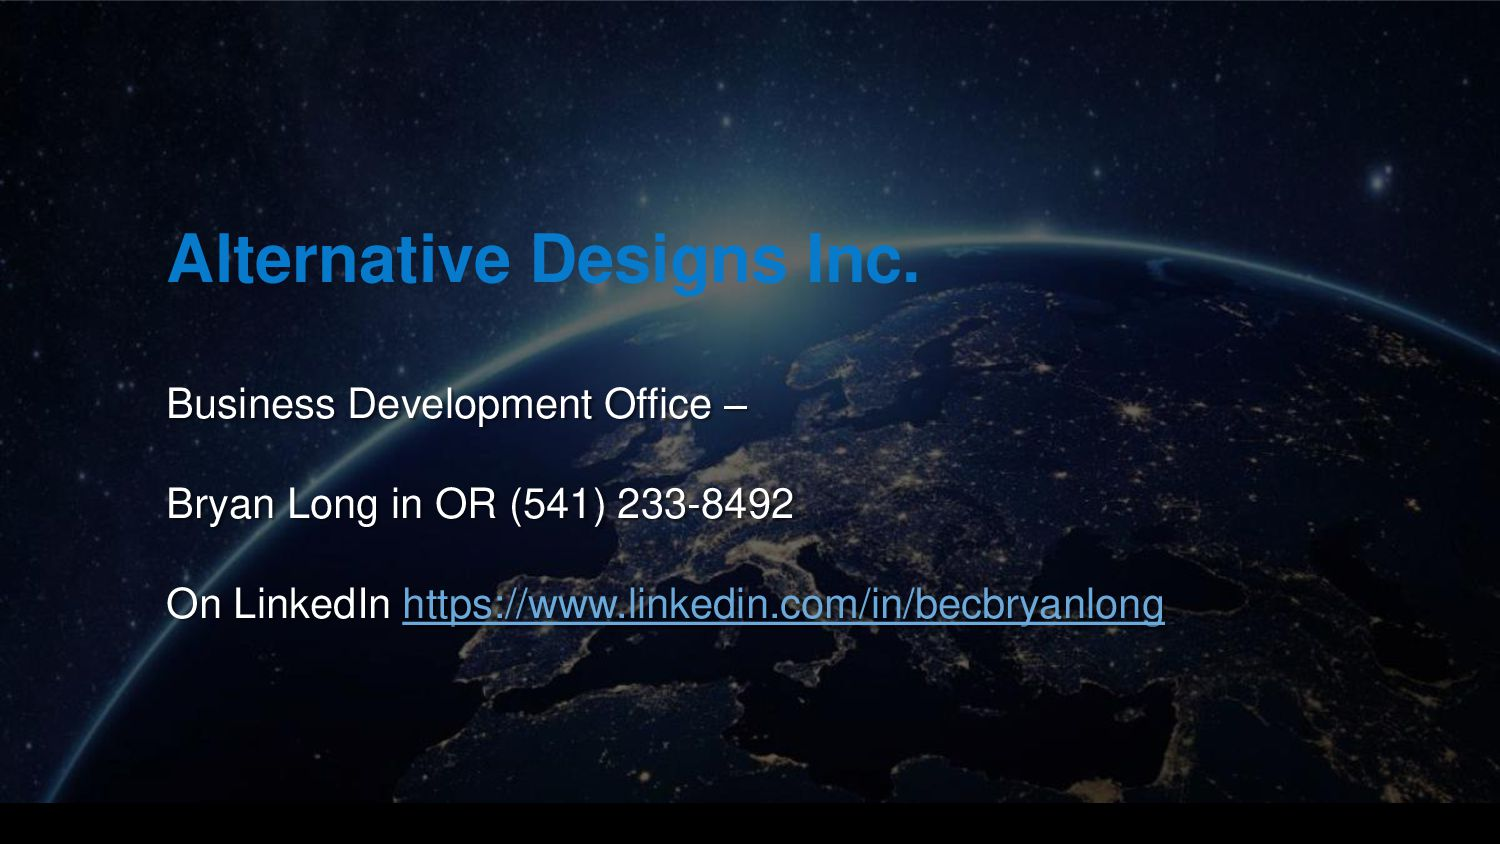 25kW and 100 kW Dual Shell Configurations Engin...